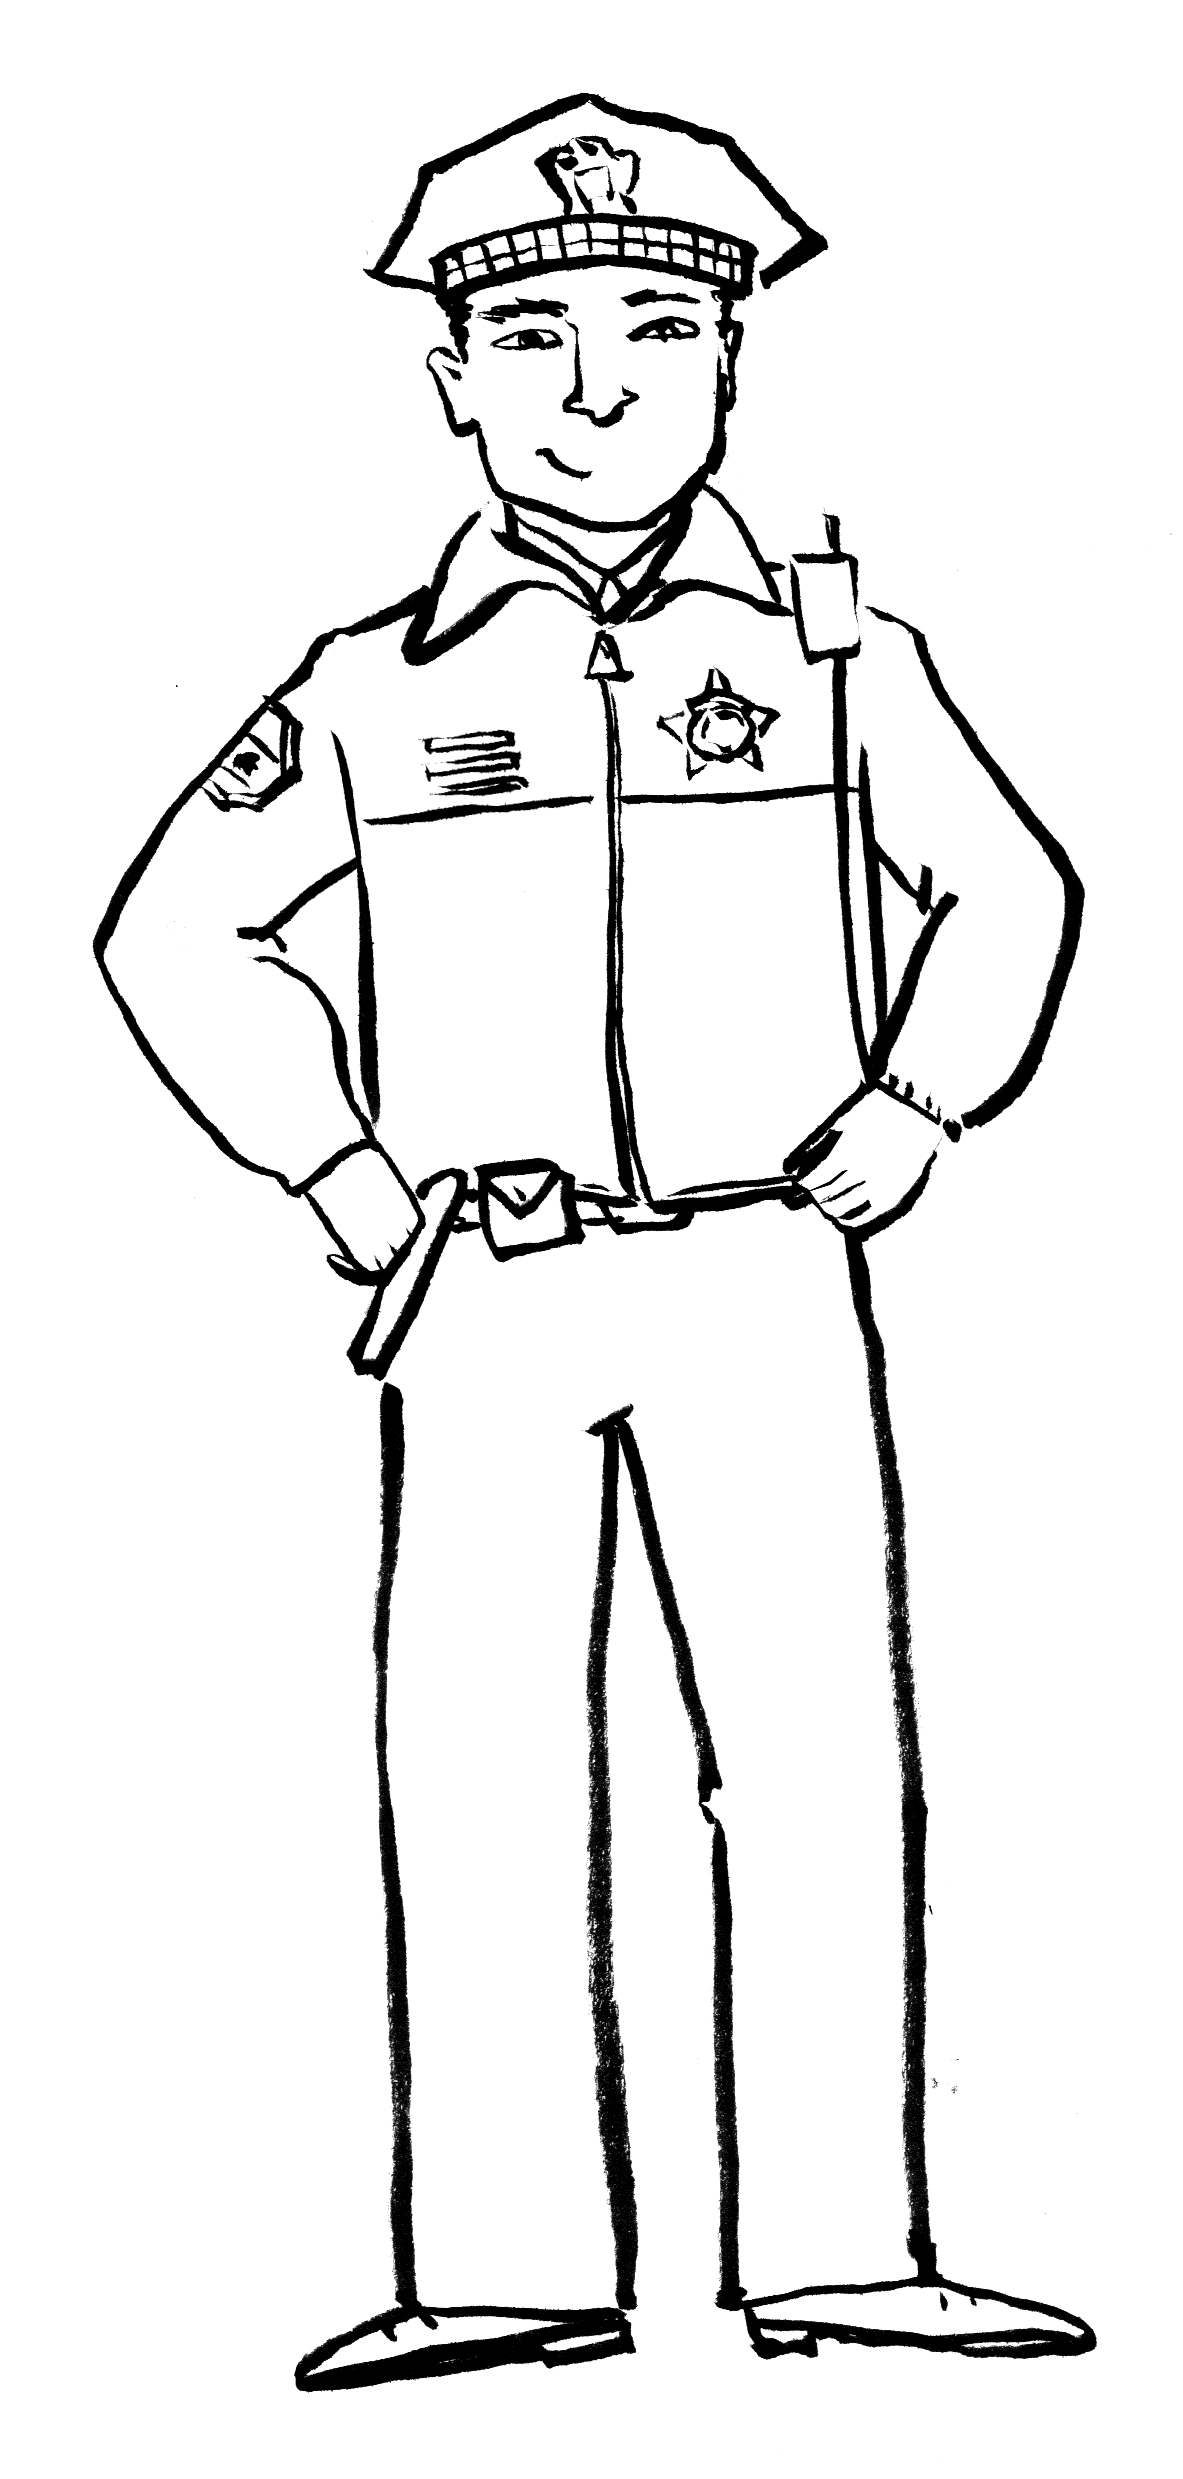 Black and white clipart police jpg black and white stock Police clipart black and white 4 » Clipart Station jpg black and white stock